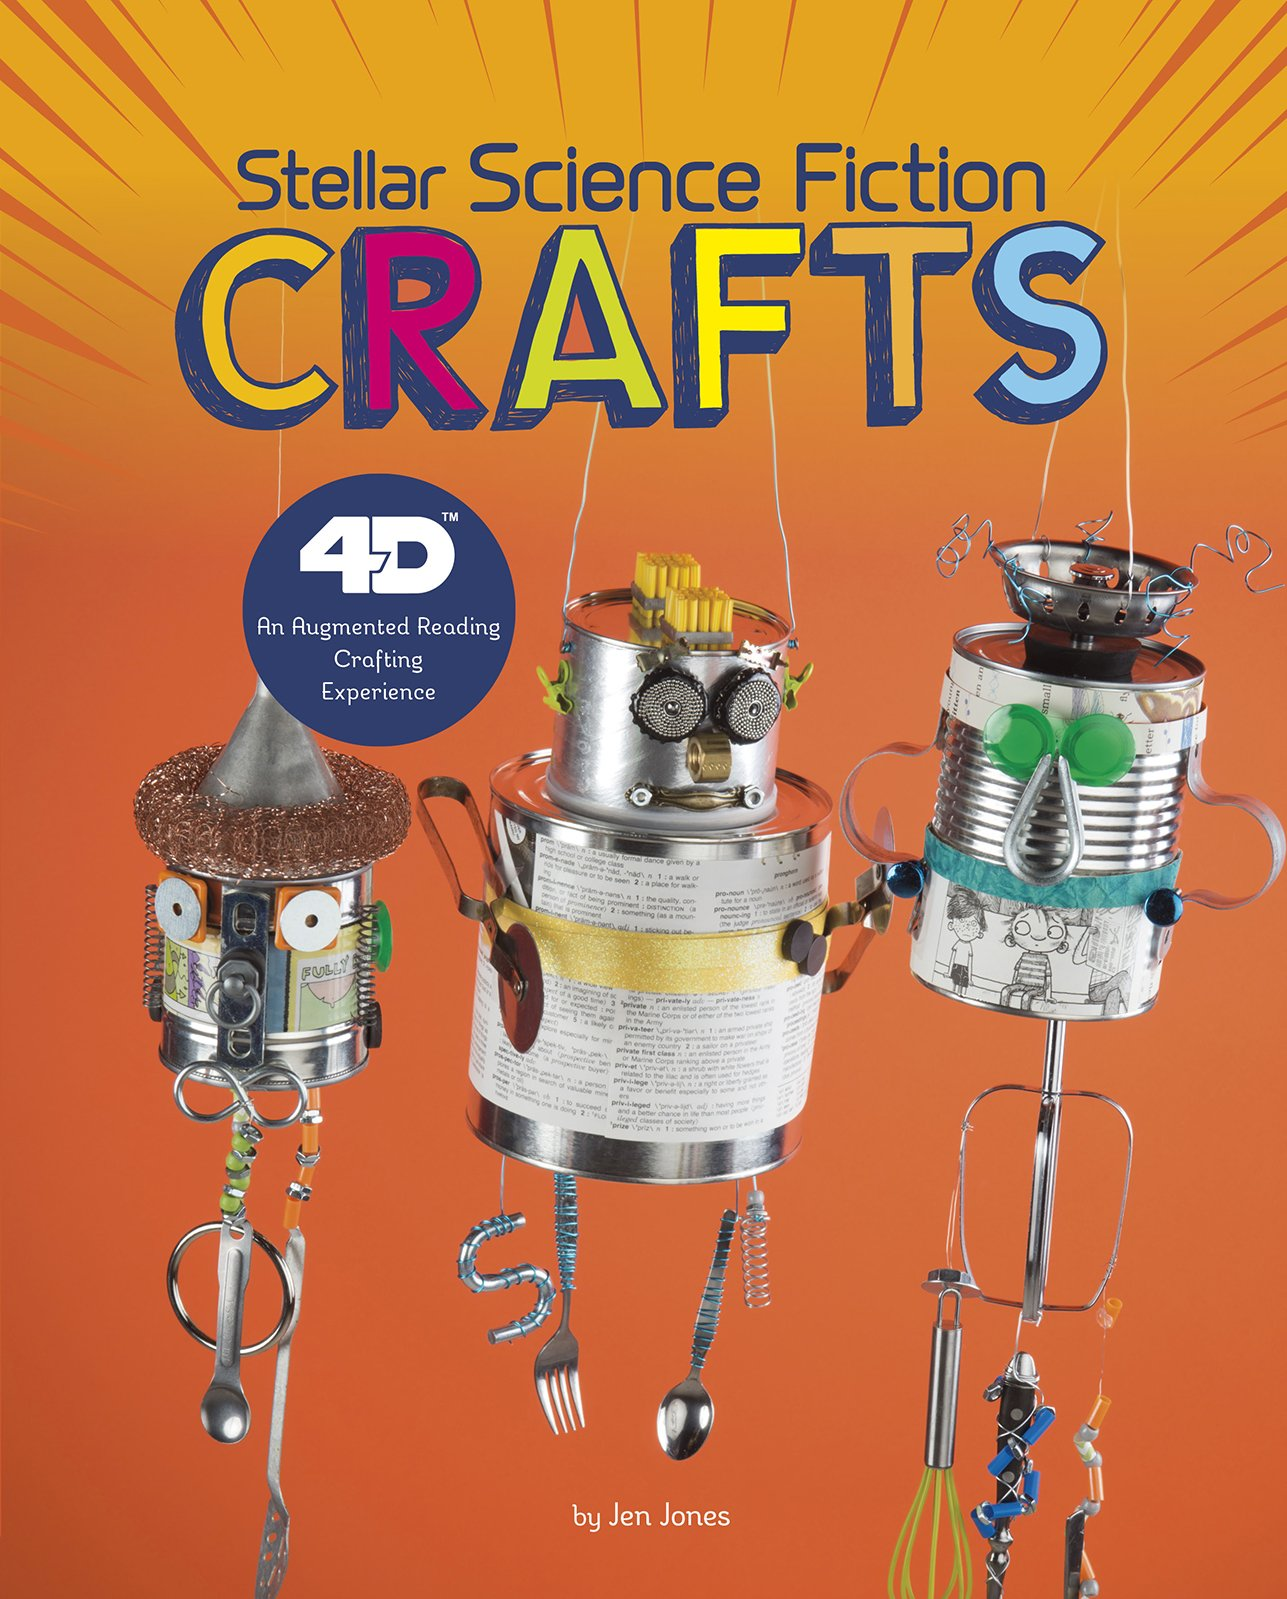 Stellar Science Fiction Crafts: 4D An Augmented Reading Crafts Experience (Next Chapter Crafts 4D)